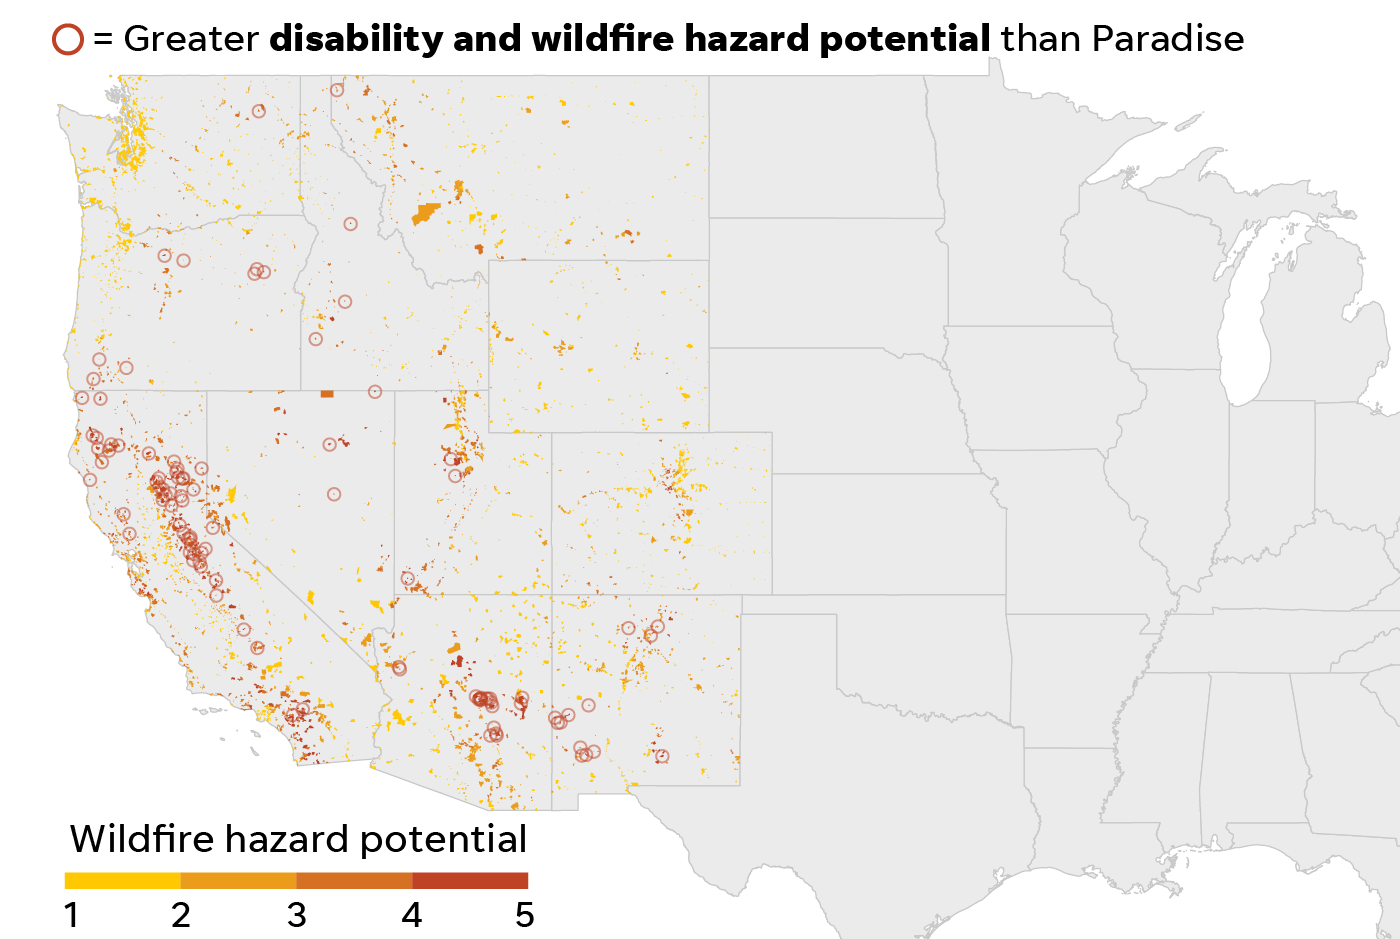 Places with disability and wildfire hazard scores greater than Paradise, Calif.